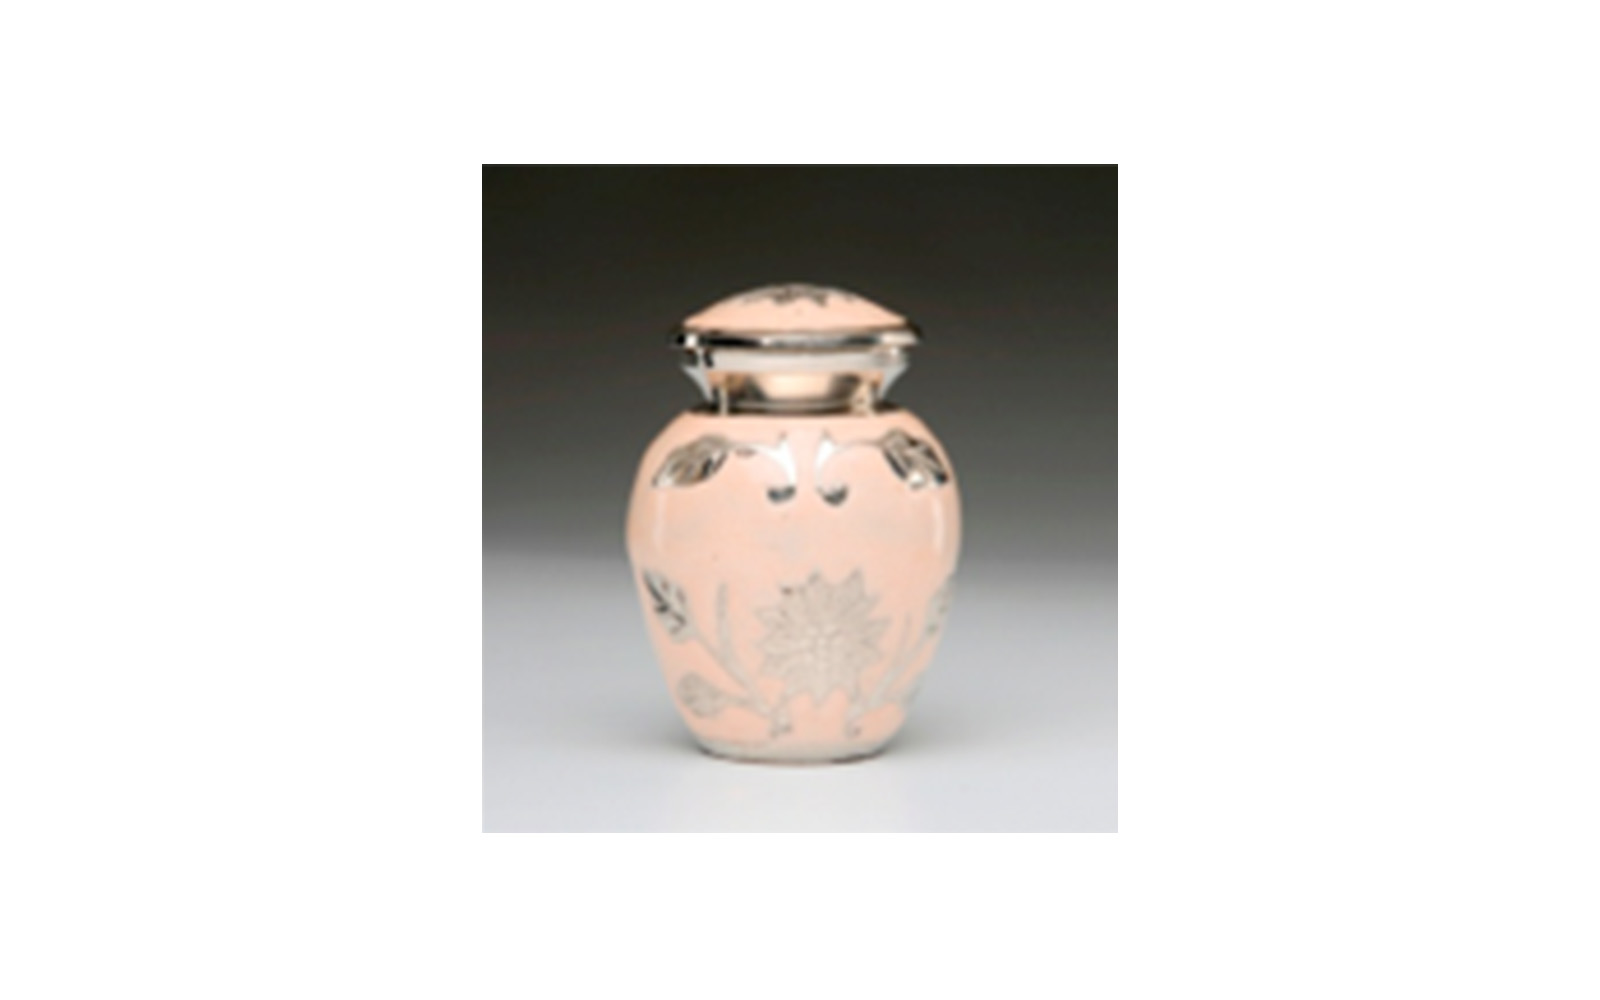 "Flowered Peach Colored Keepsake      This elegant urn is made of a Peach Colored Enamel over Nickel Plated Brass. It has a Hand-Tooled Flower Design, Threaded Lid, a Felt-Lined Base, and comes in a Velvet Box.   Measures 3"" x 2.25"" H, 3 Cu. Inches, up to 2 lbs.,    $55"